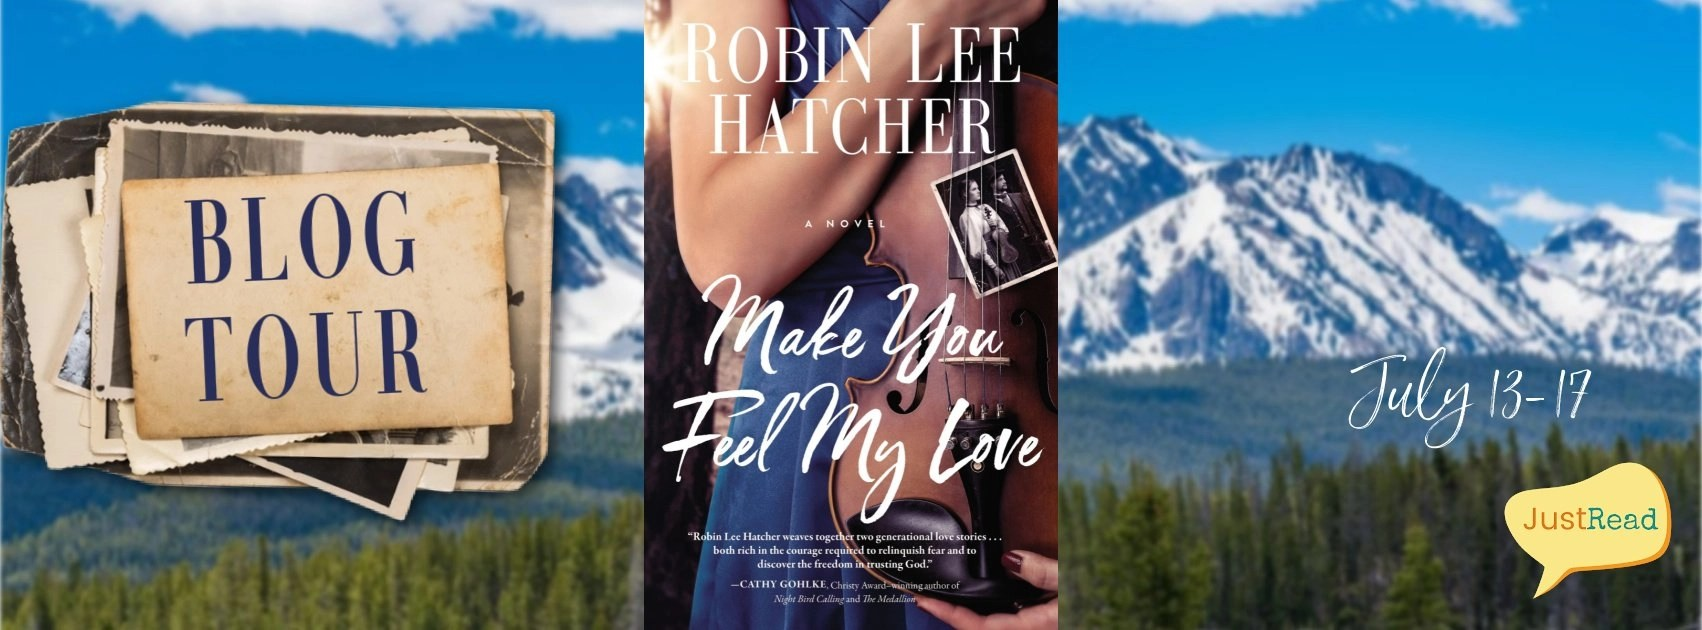 Welcome to the Make You Feel My Love Blog Tour & Giveaway!